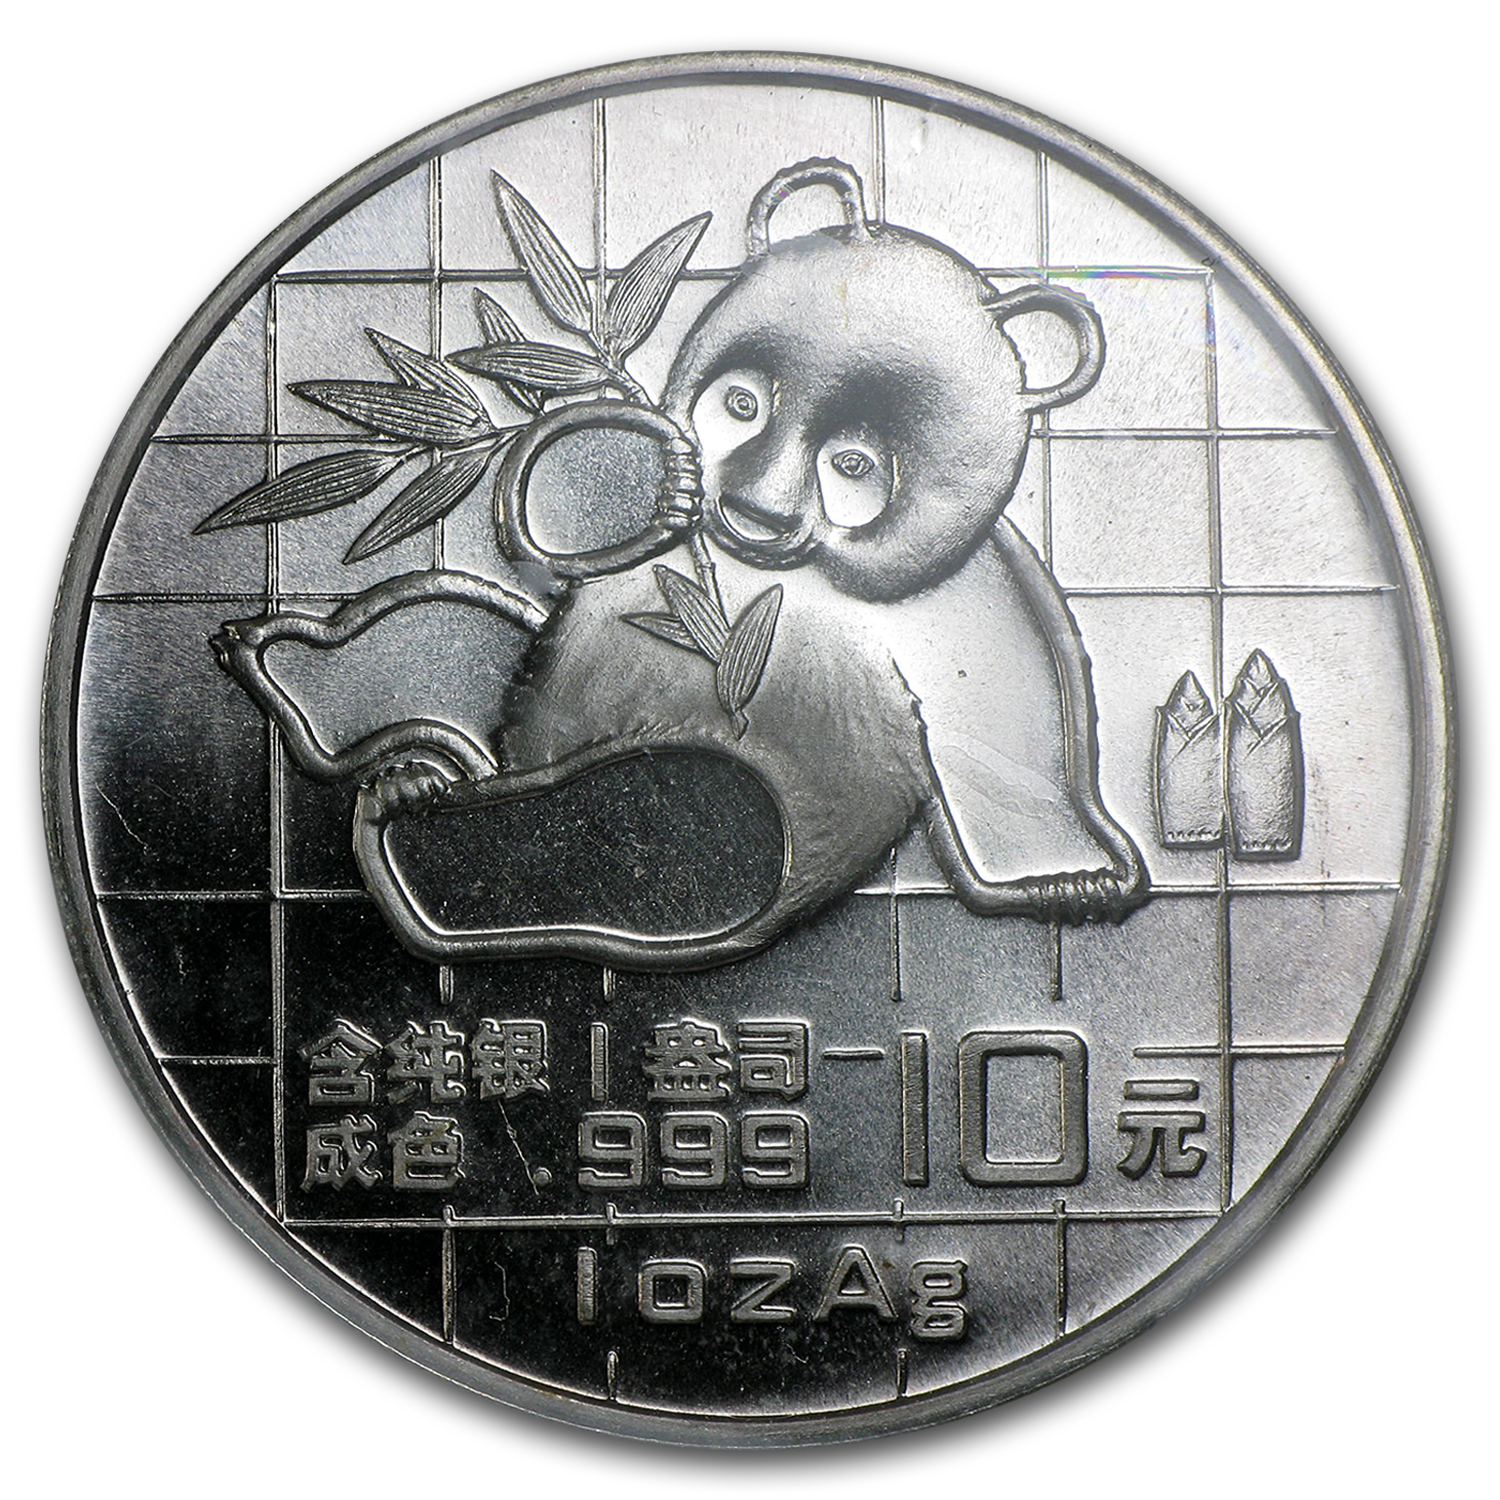 1989 1 oz Silver Chinese Panda BU (Sealed)